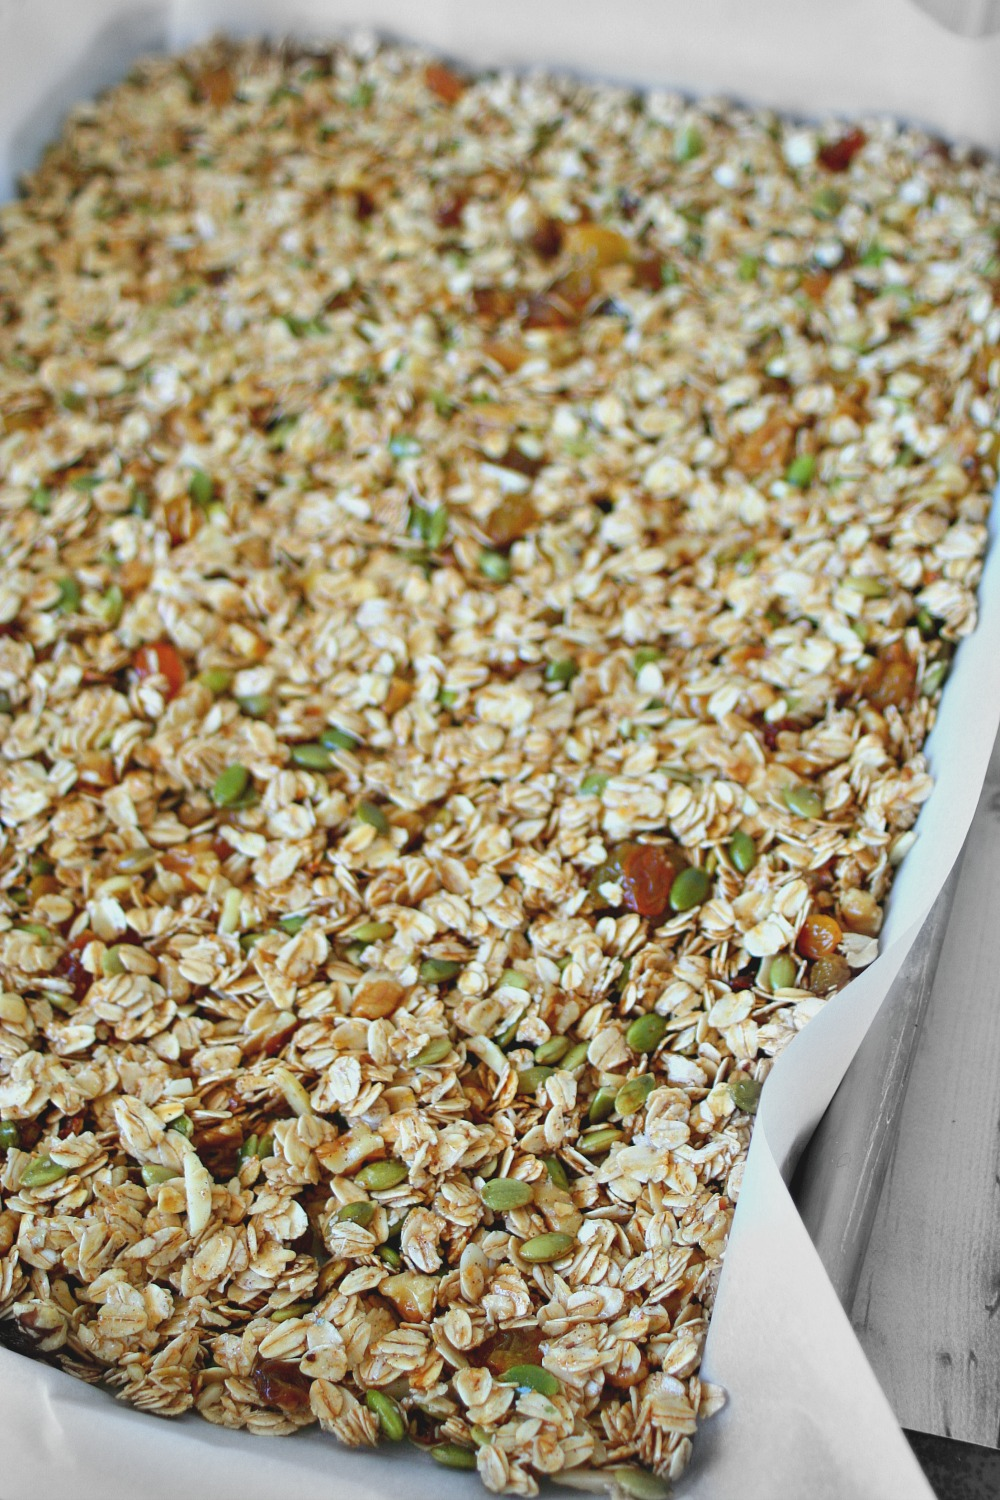 Homemade Granola Tray 2